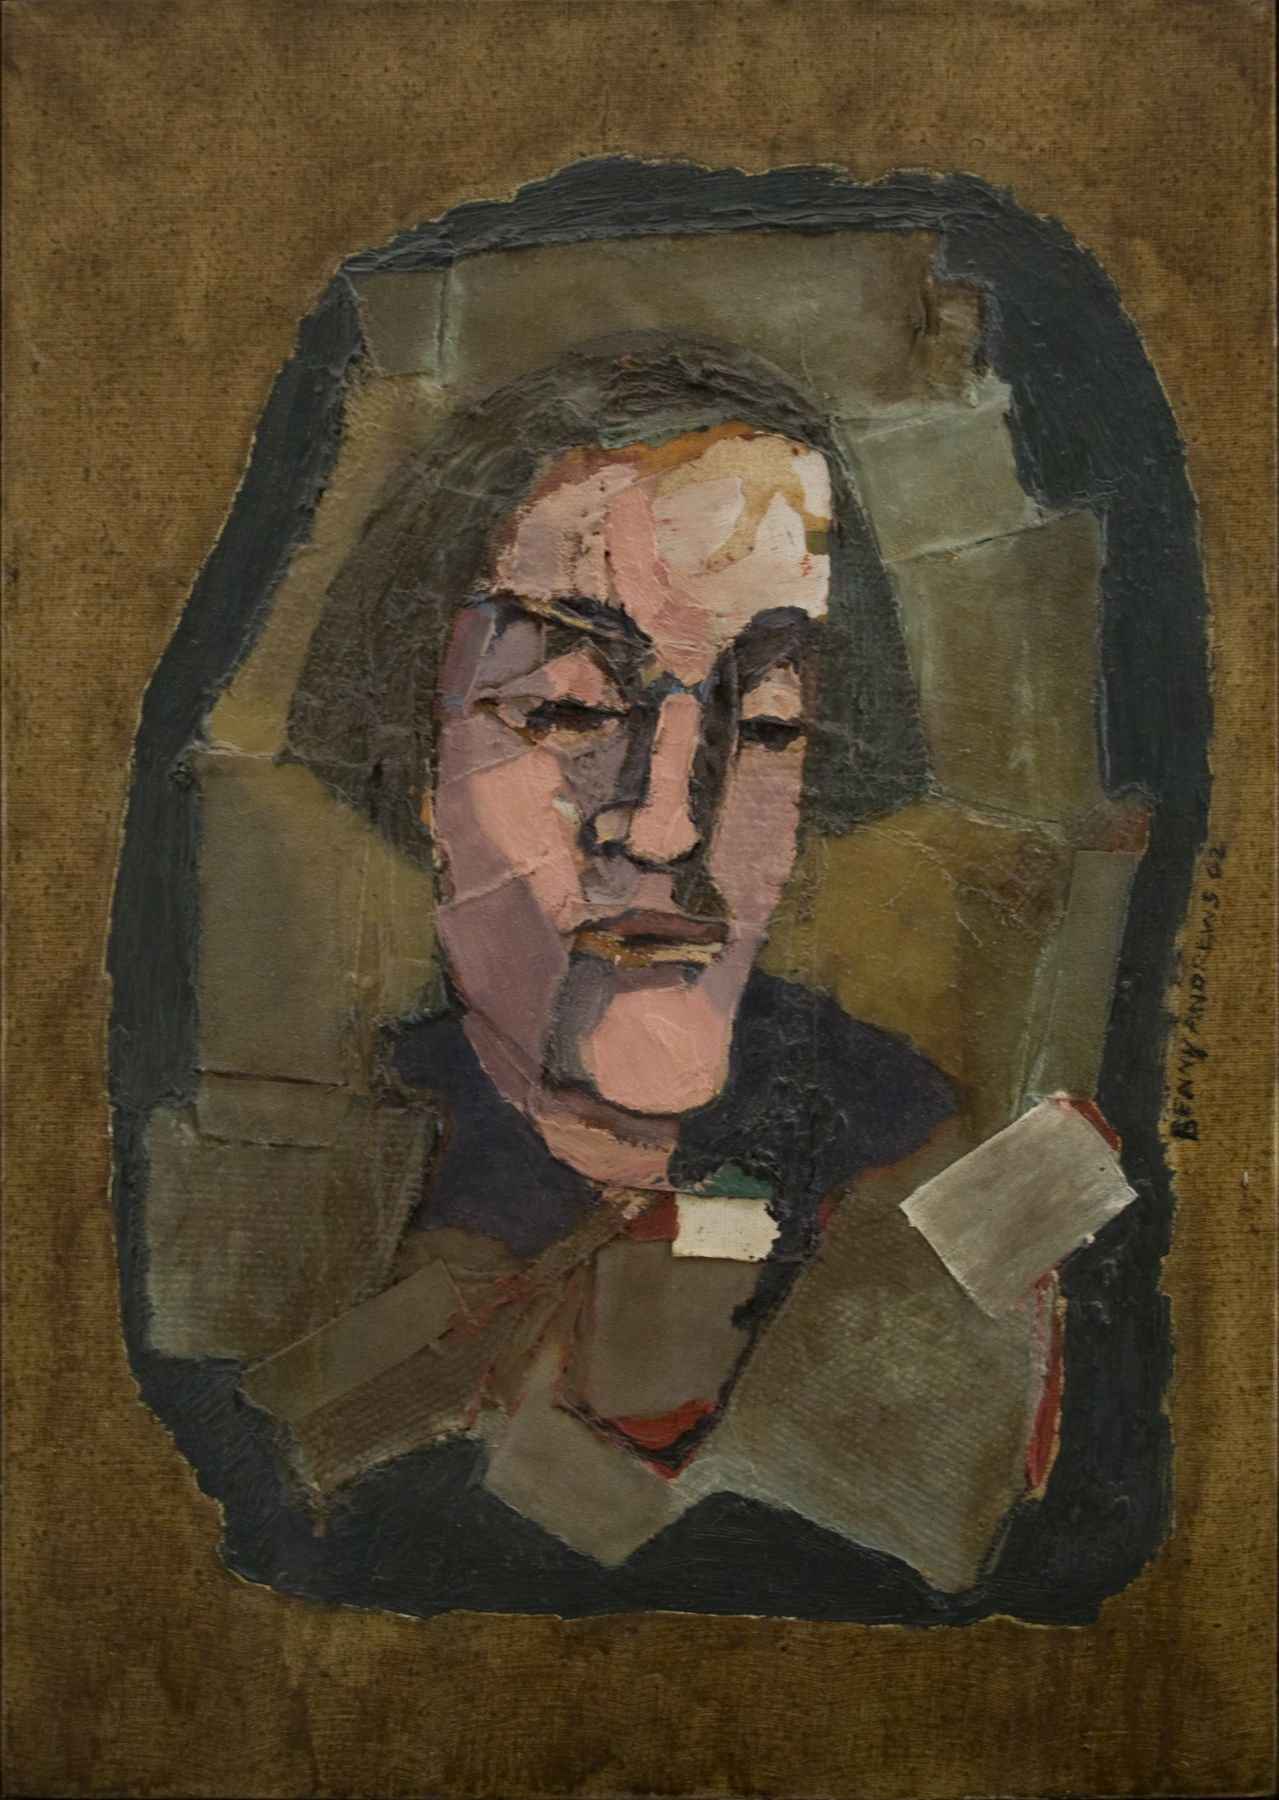 Benny Andrews, Poet, 1962, oil and collage on canvas, 25 x 17 1/2 inches